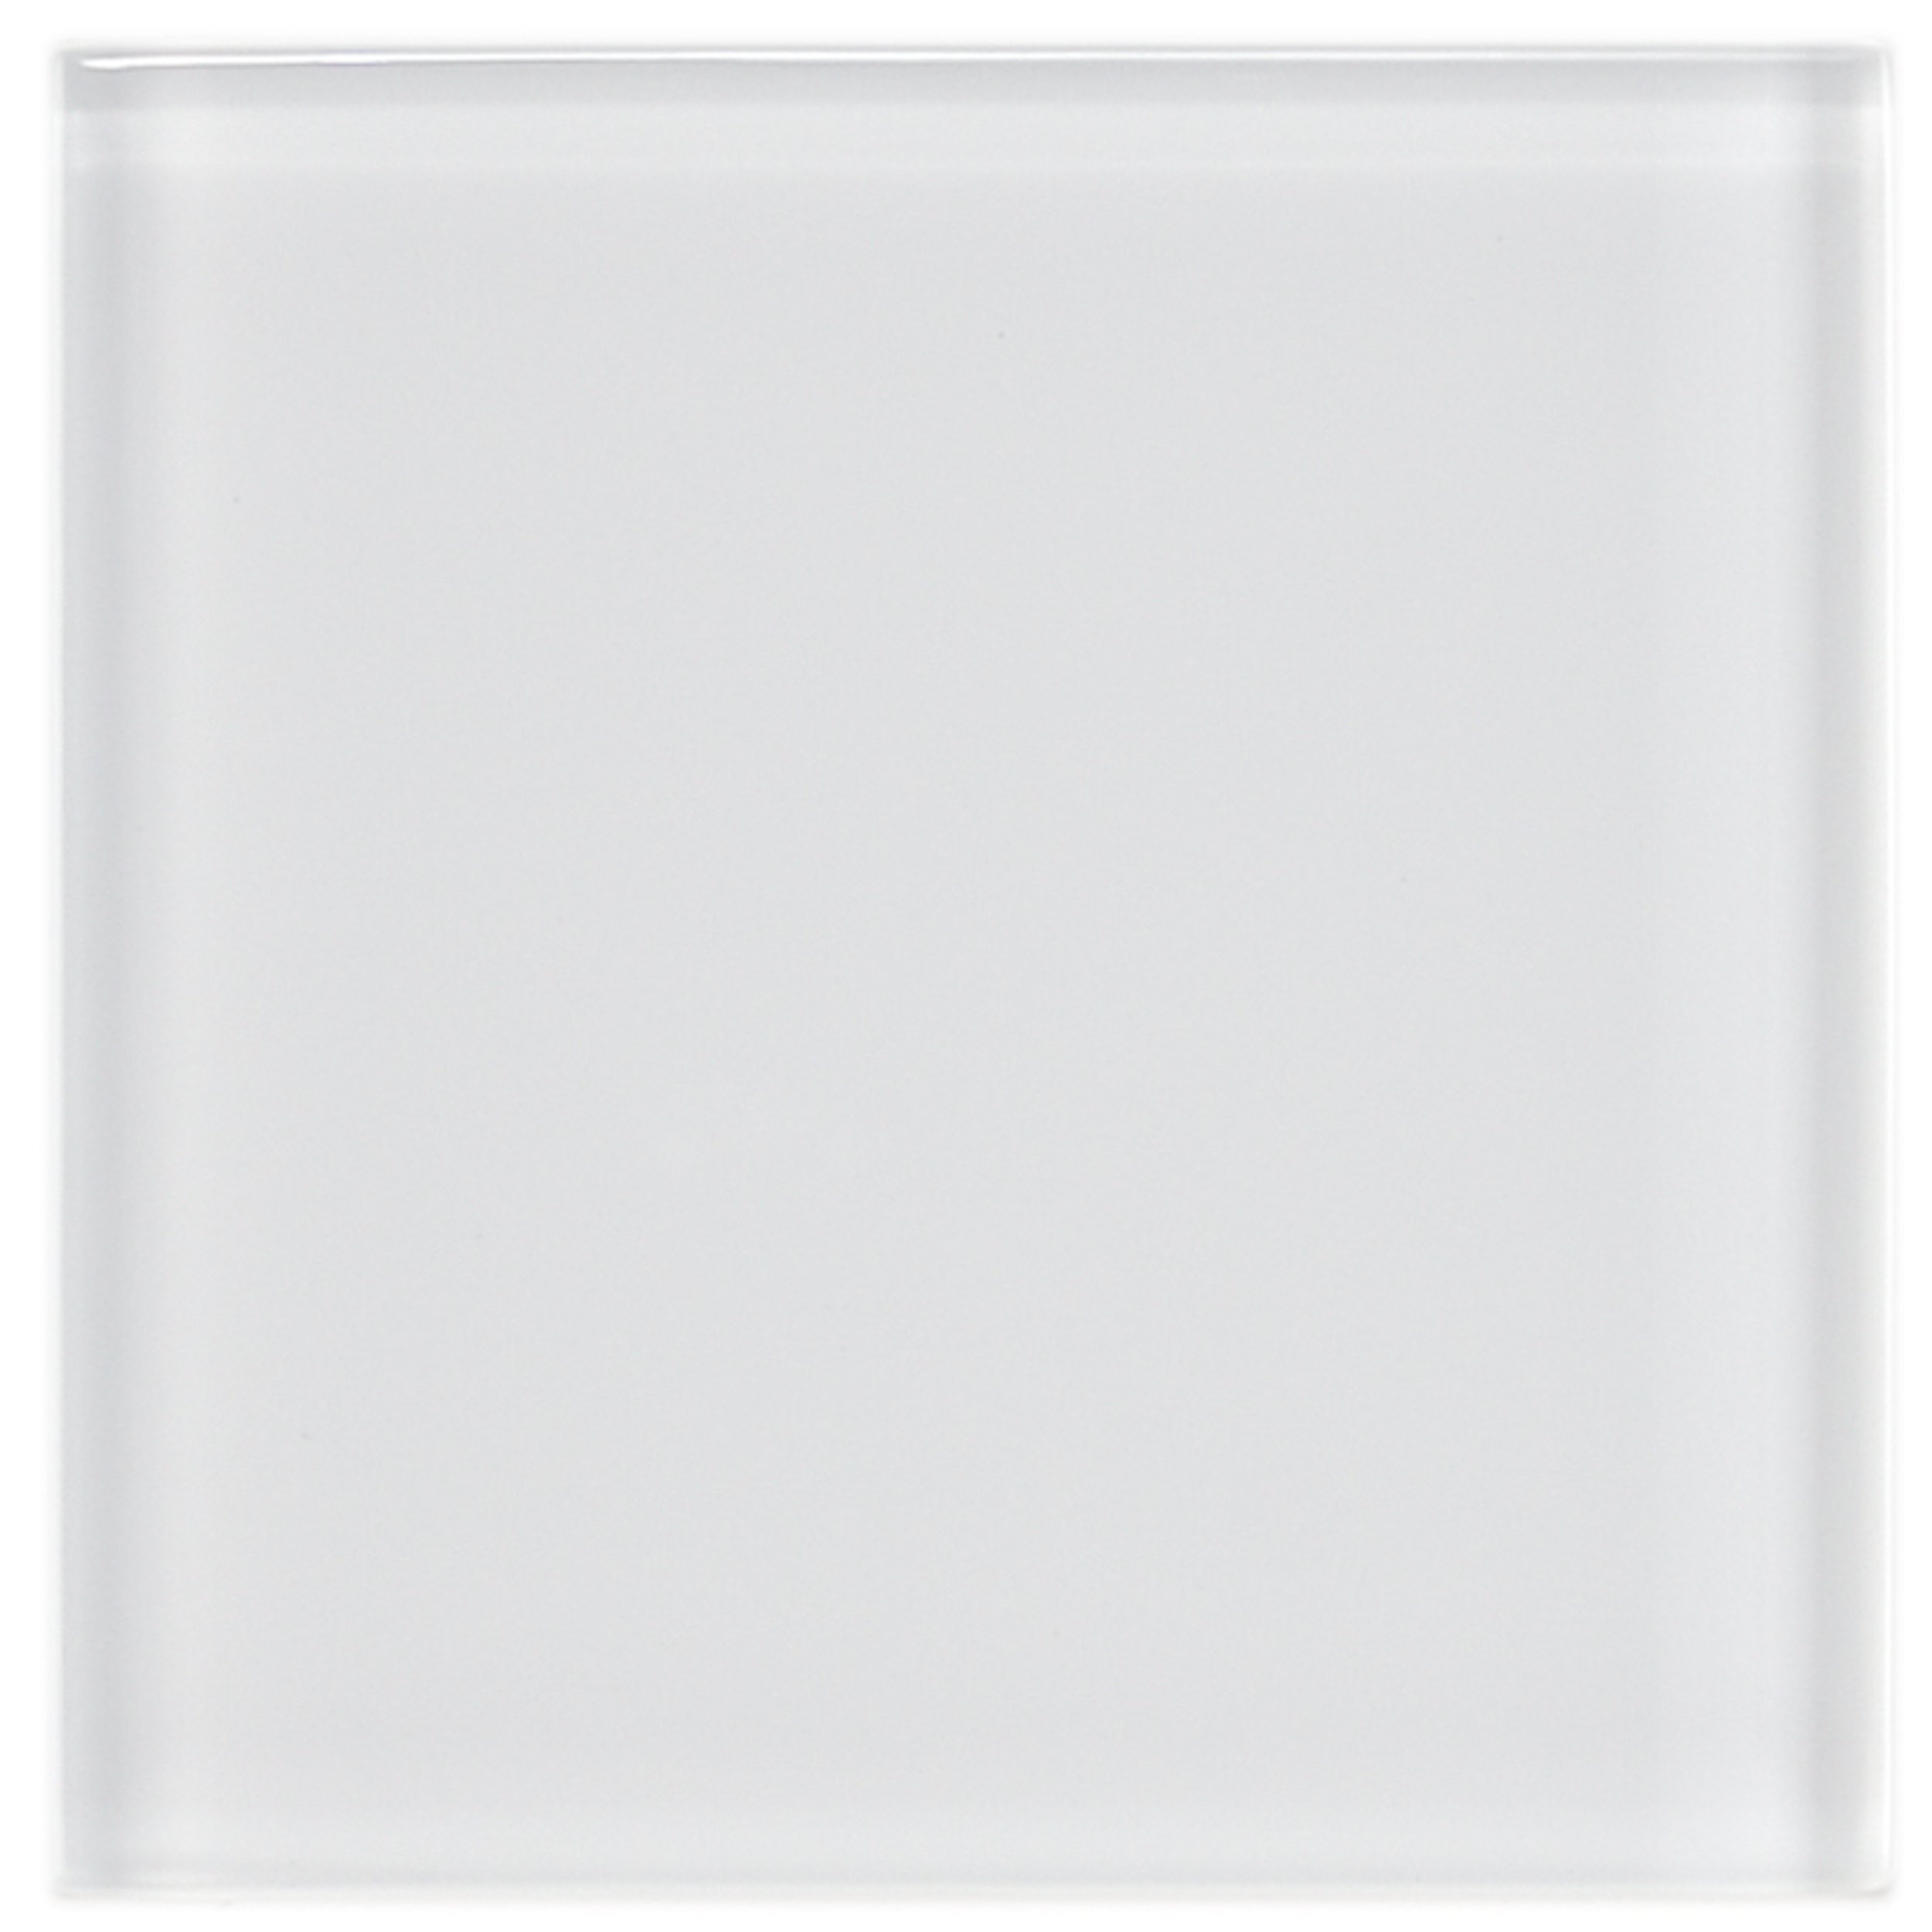 SomerTile GDM4IC Sierra Glass Wall Tile, 4'' x 4'', Ice White by SOMERTILE